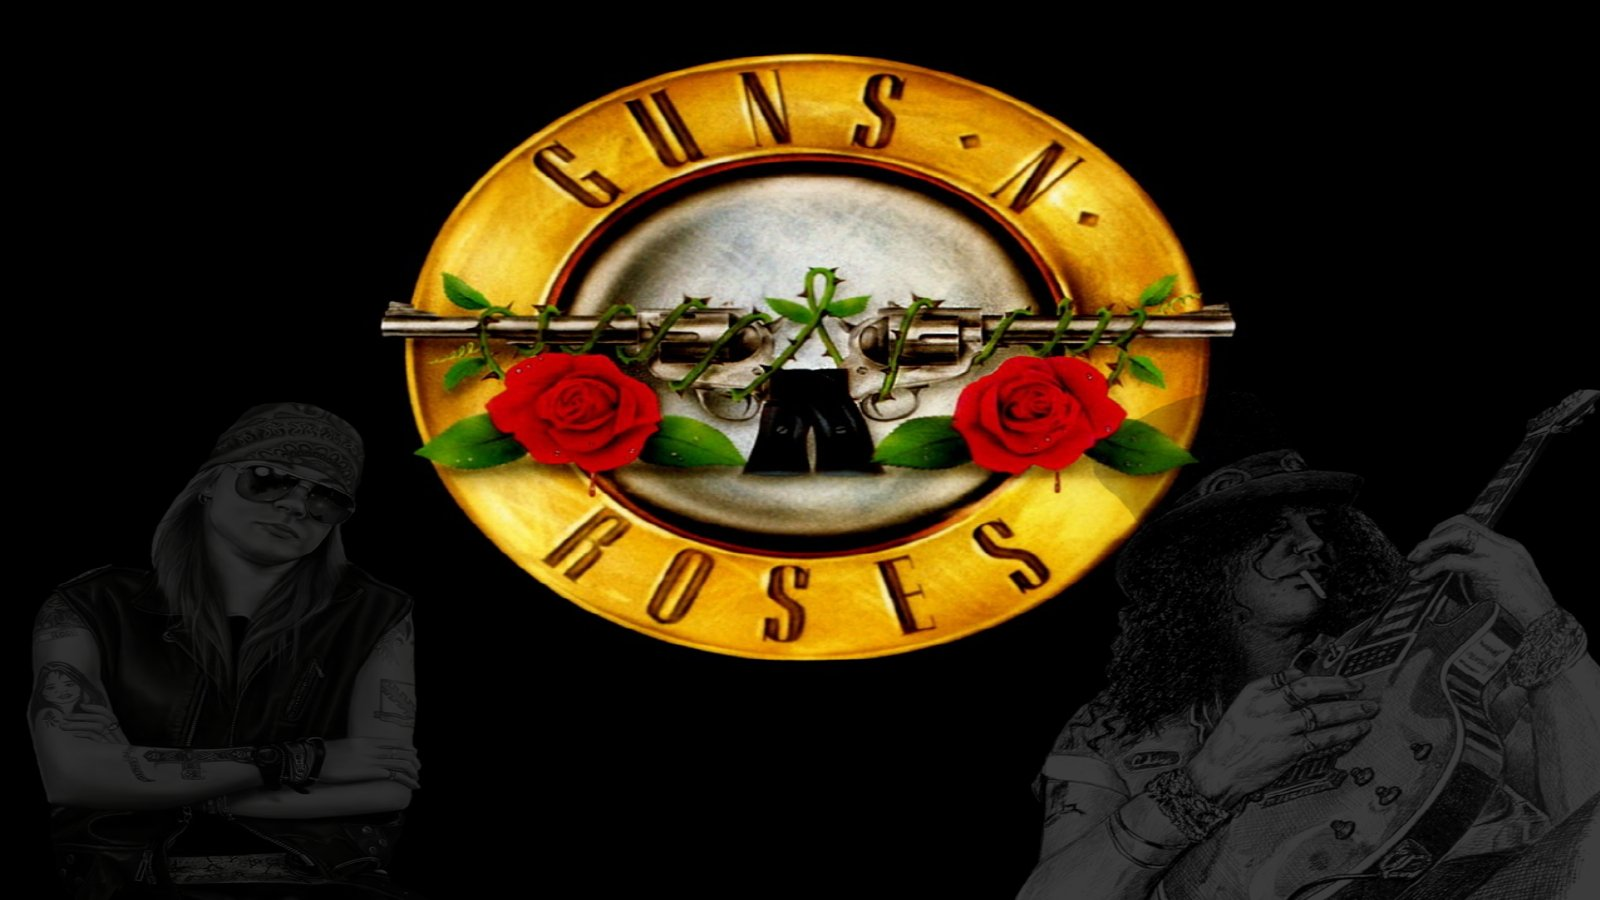 Guns & Roses Wallpaper and Background | 1600x900 | ID:278173